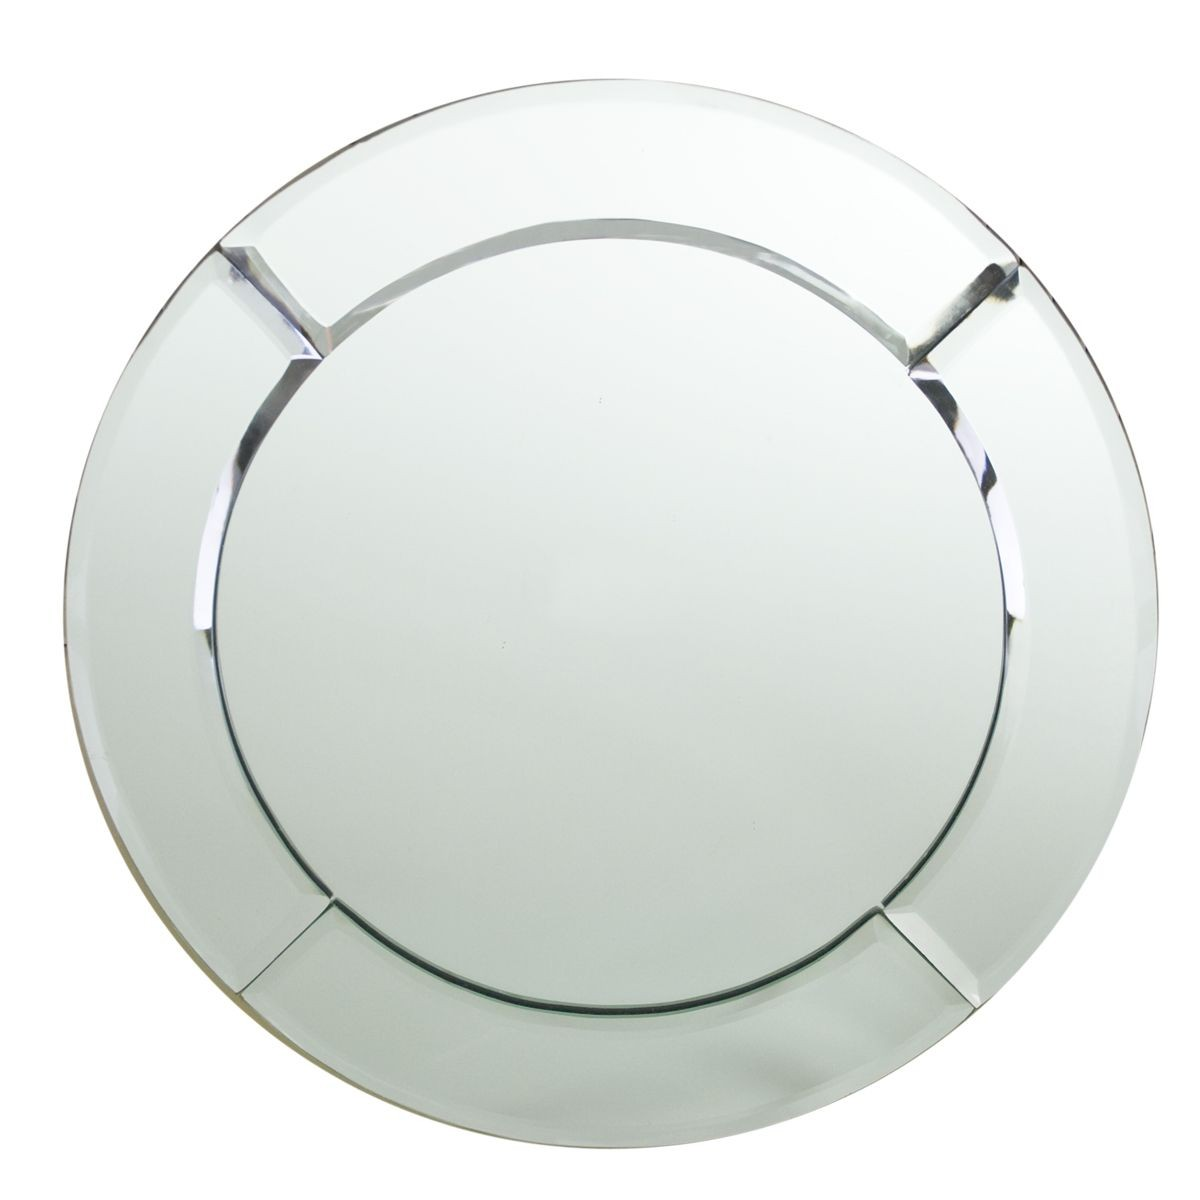 The Jay Companies 1330051 Round Mirror Glass Charger Plate 13""